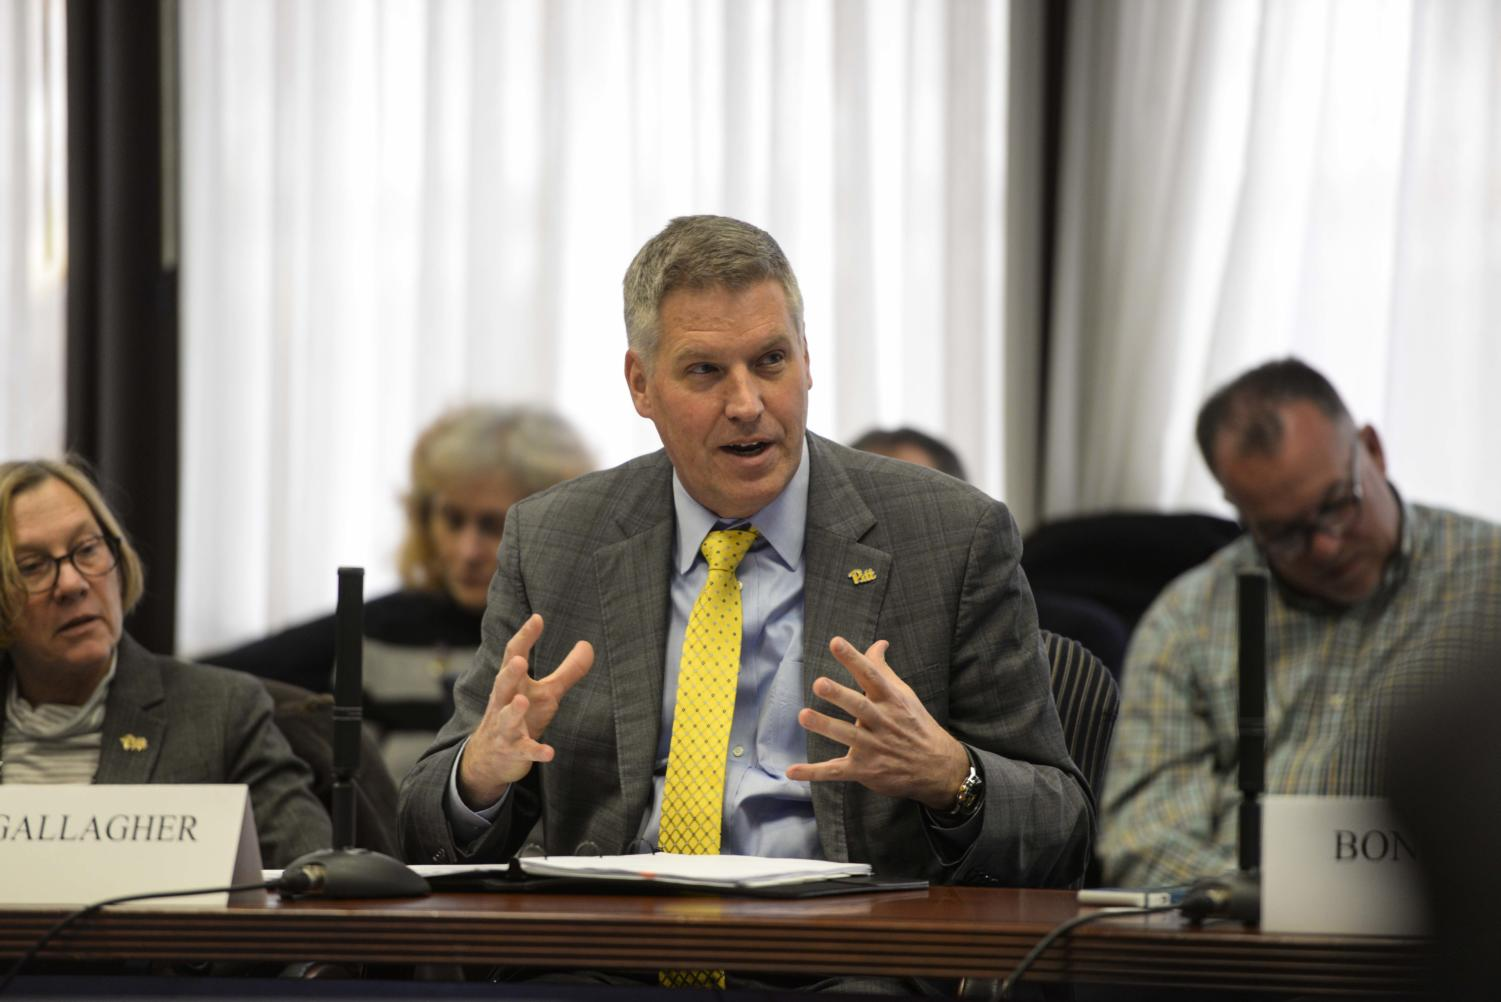 Pitt announced a new interim policy for severe weather closures on Wednesday. The new policy allows the chancellor to close the University as a result of severe weather with consultation from other administrators.